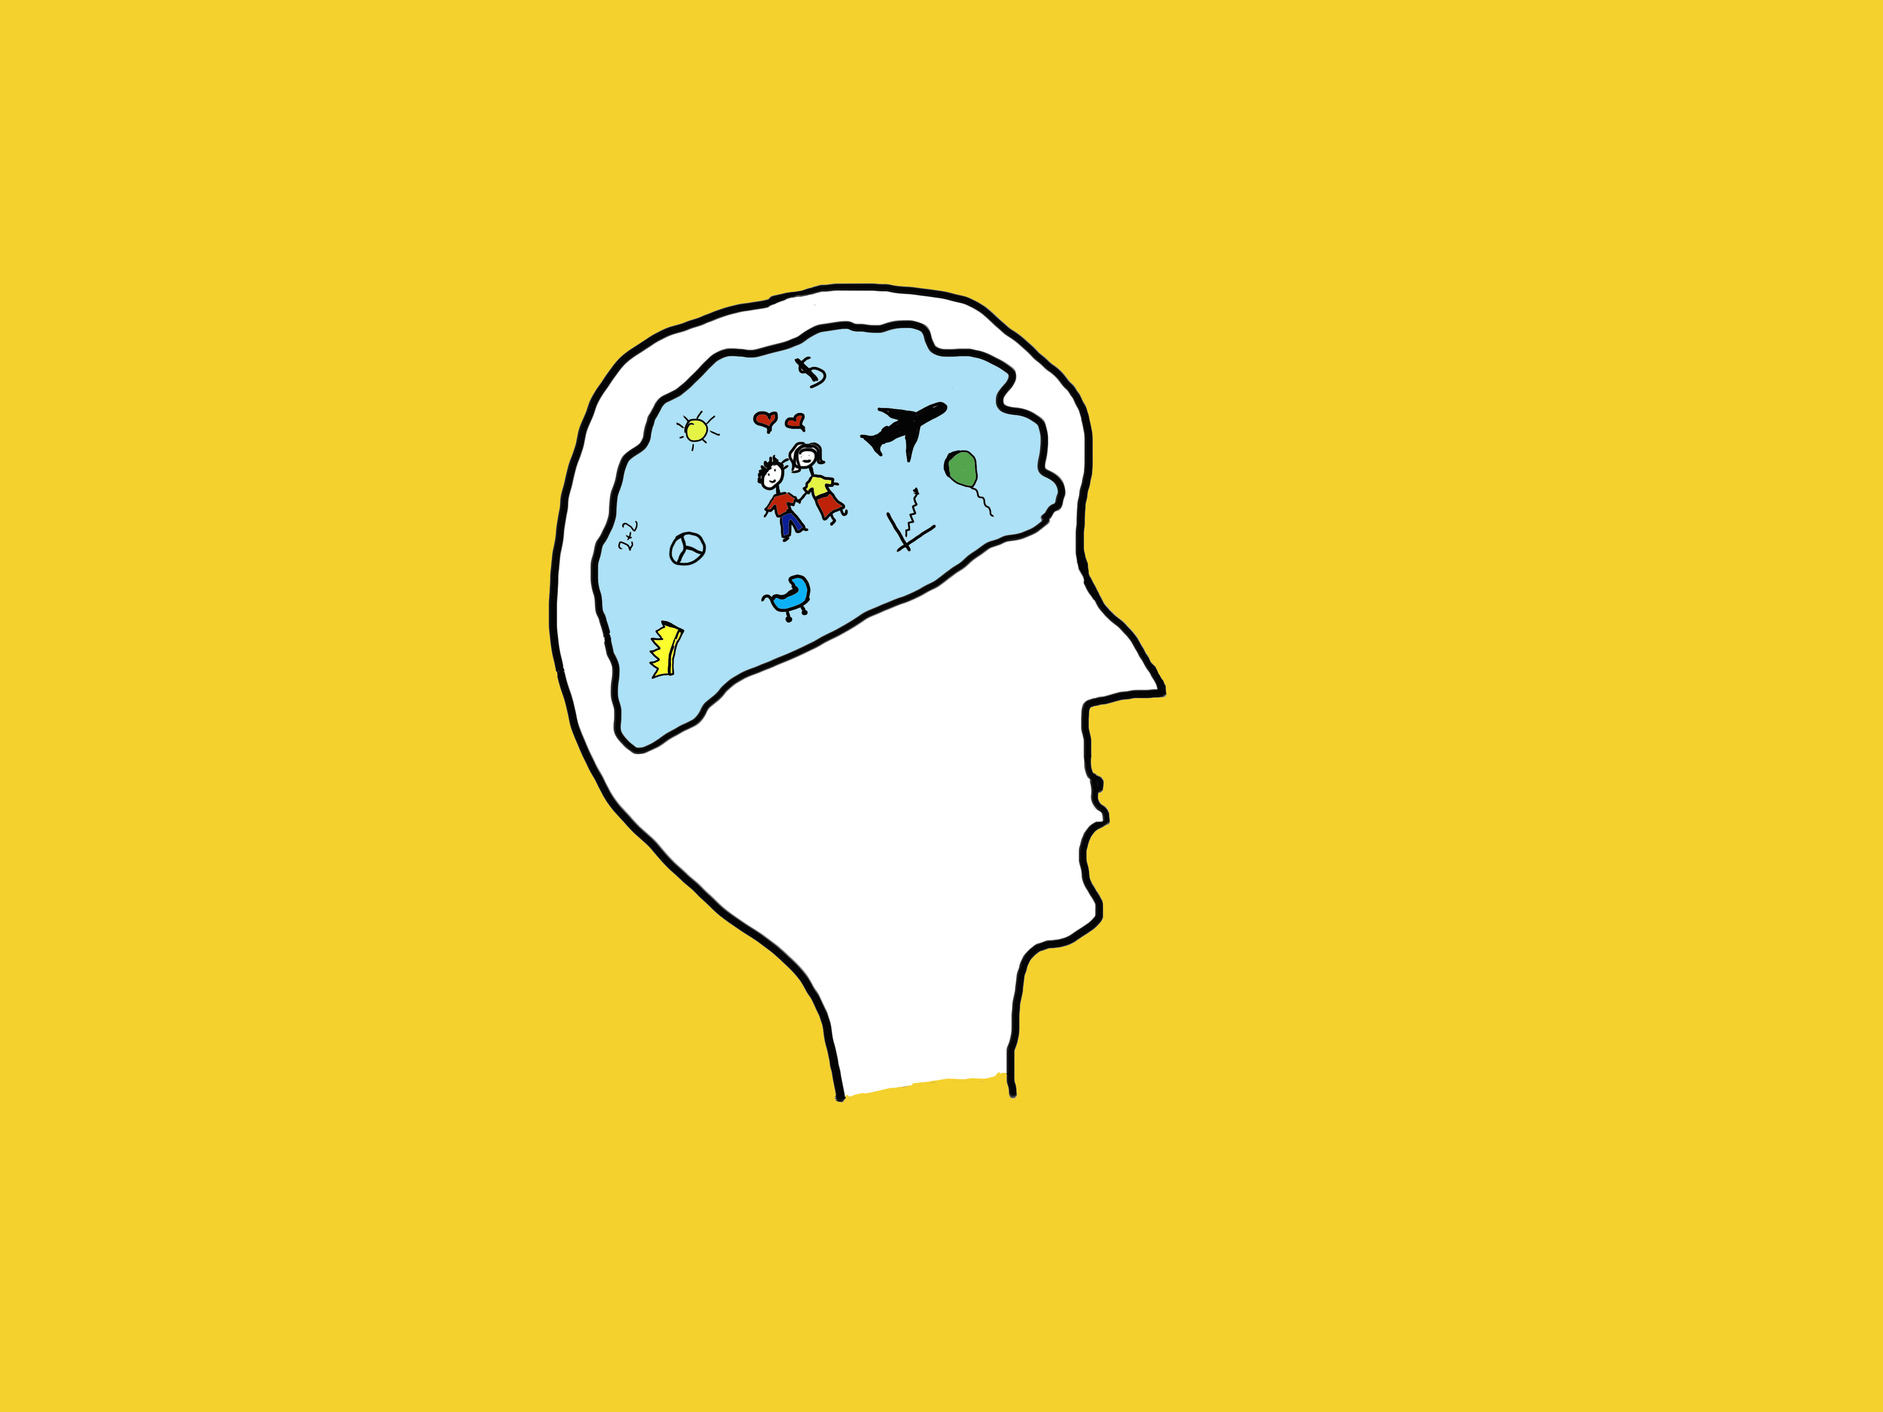 How Does Molecular Action In The Brain Make Thoughts?